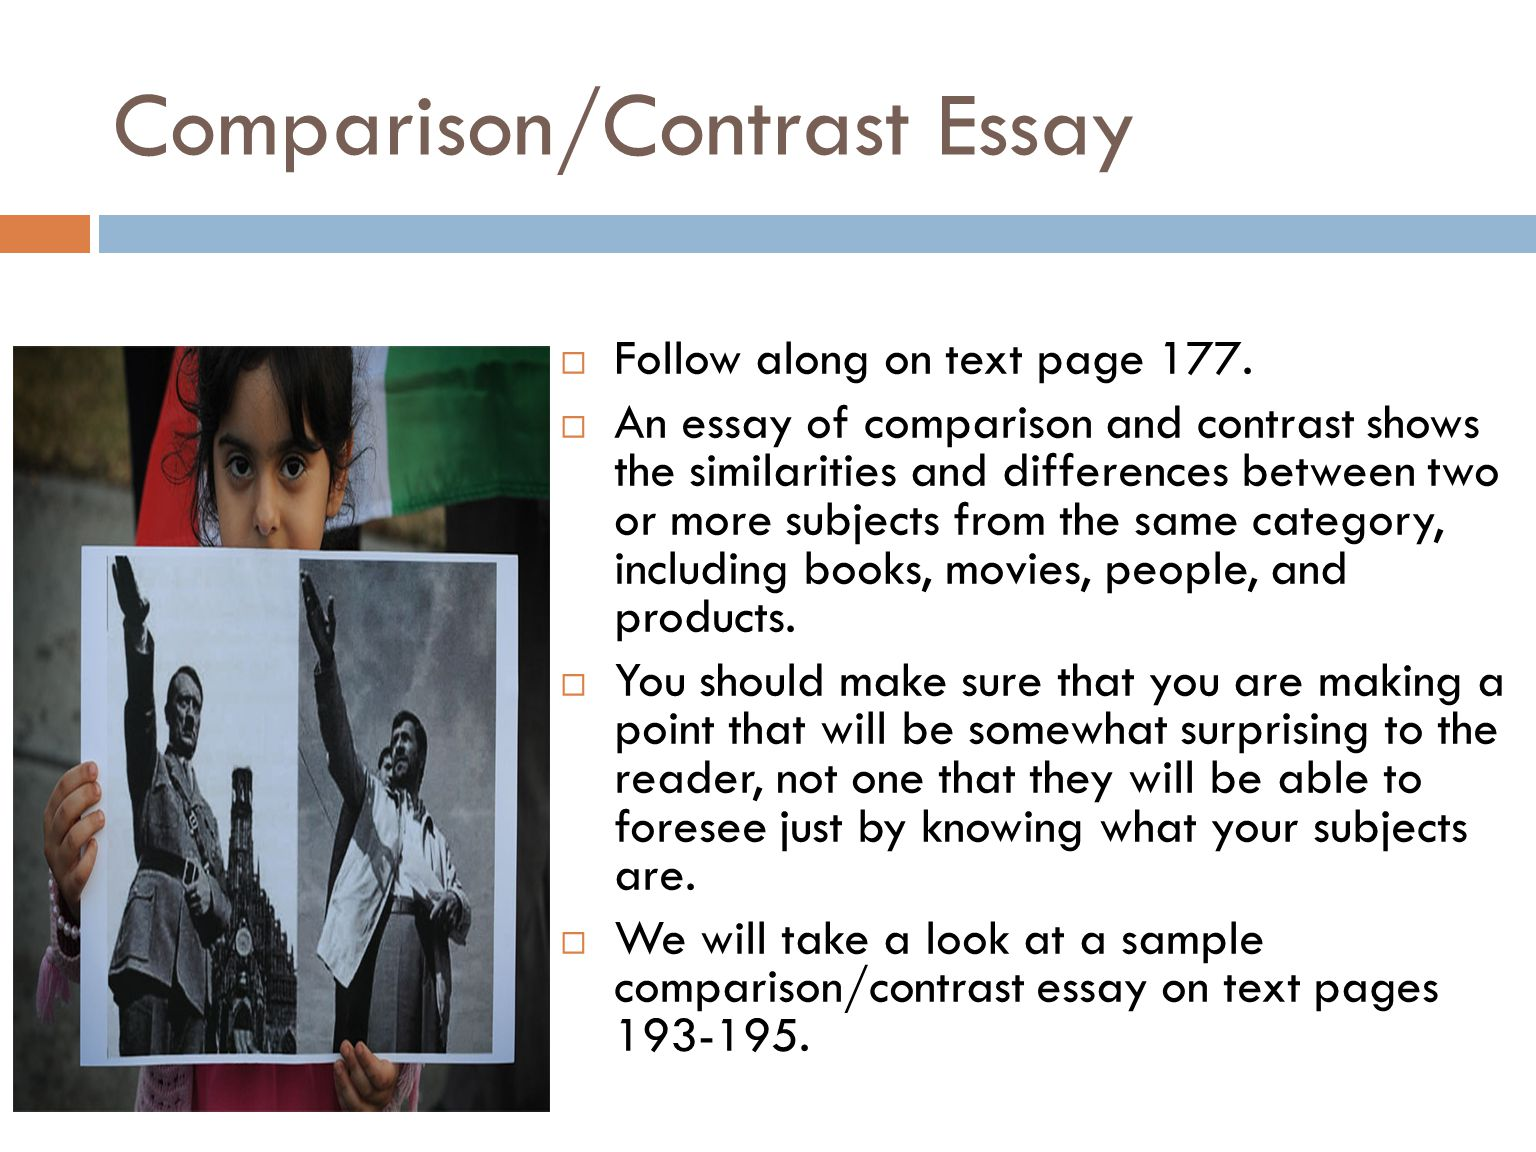 compare contrast essay vampires Free vampires papers, essays, and - a comparison of two extracts from films portraying vampires in this essay i will compare two extracts from films.